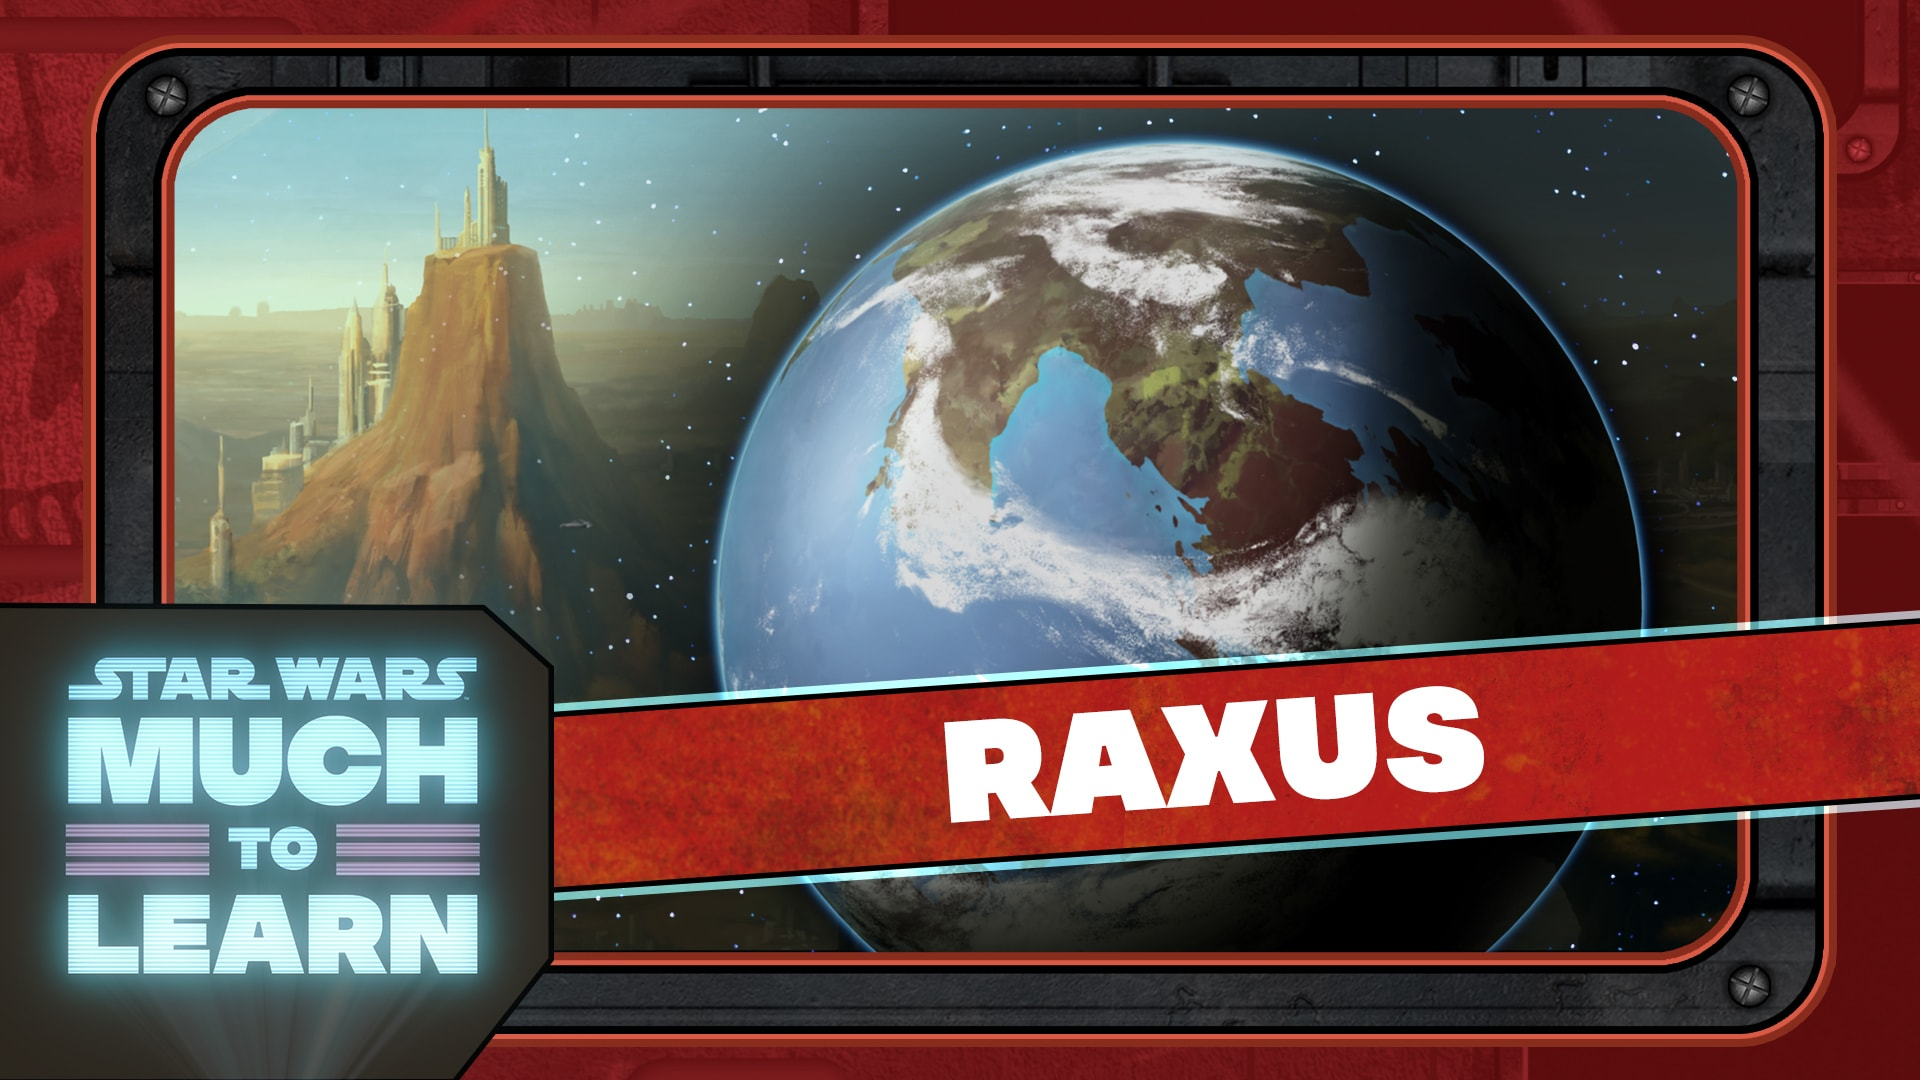 Raxus   Star Wars: Much to Learn